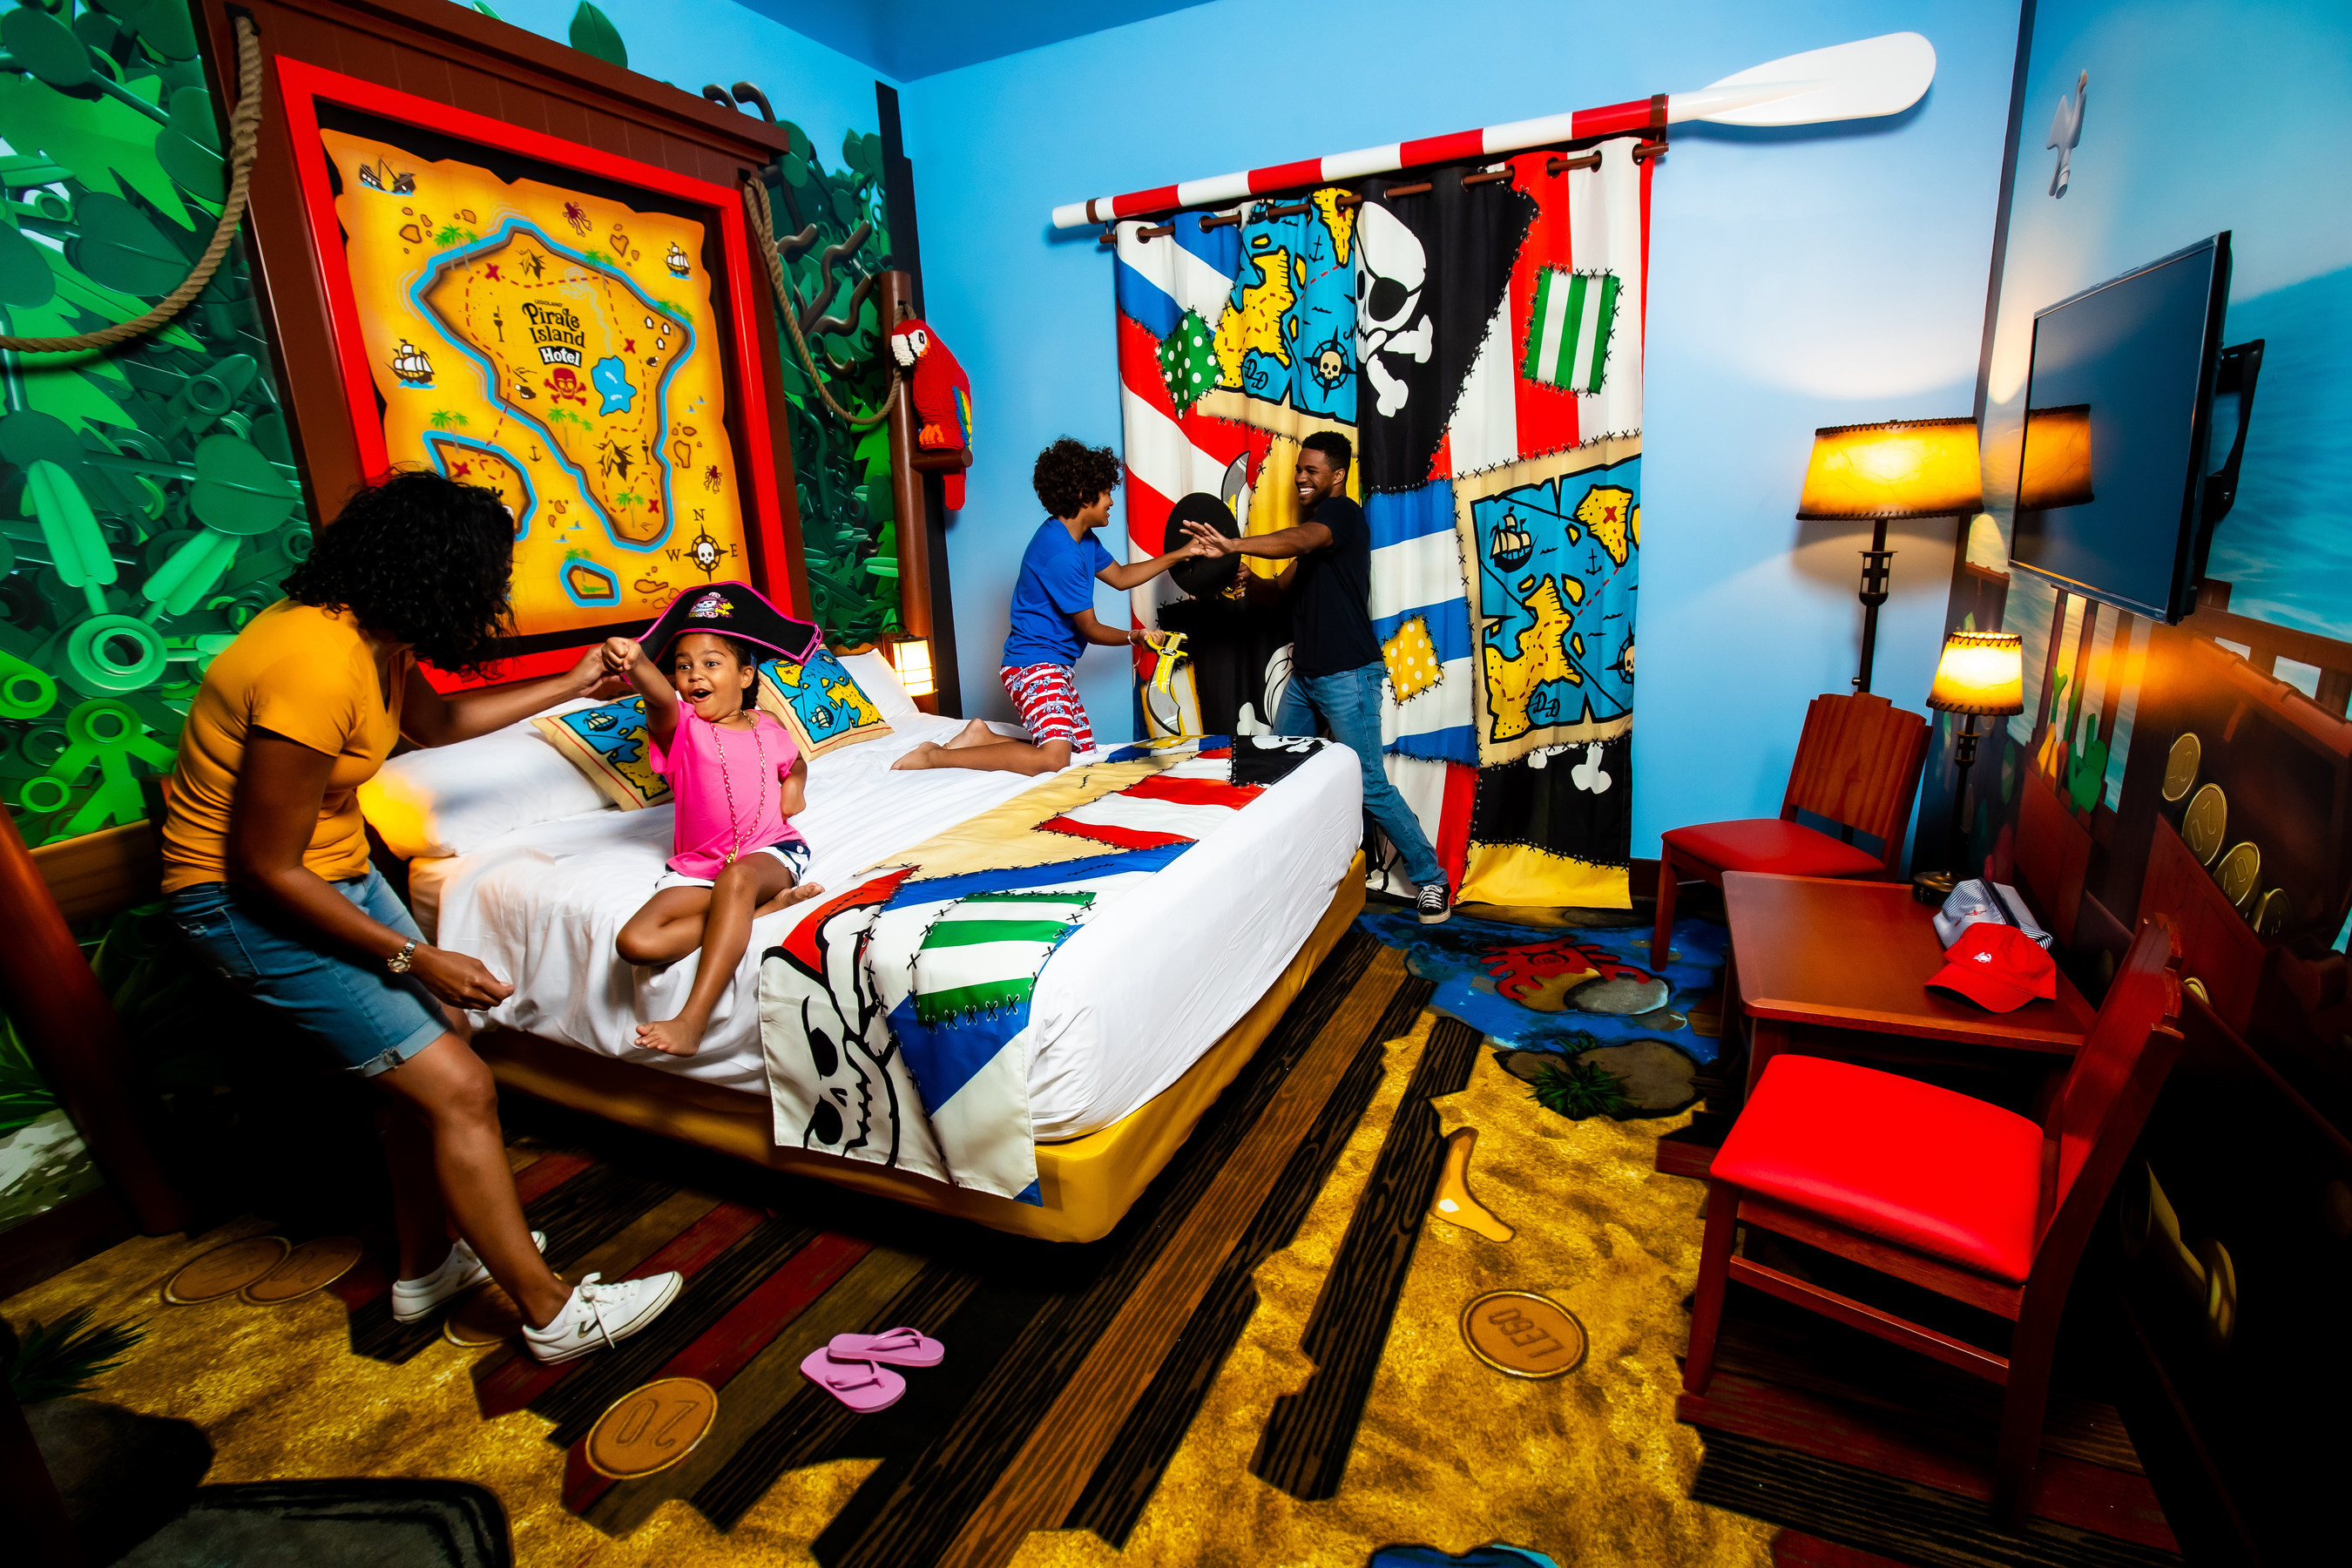 LEGOLAND Florida Resort Reveals First Look at Pirate Island Hotel and Announces Grand Opening on April 17, 2020